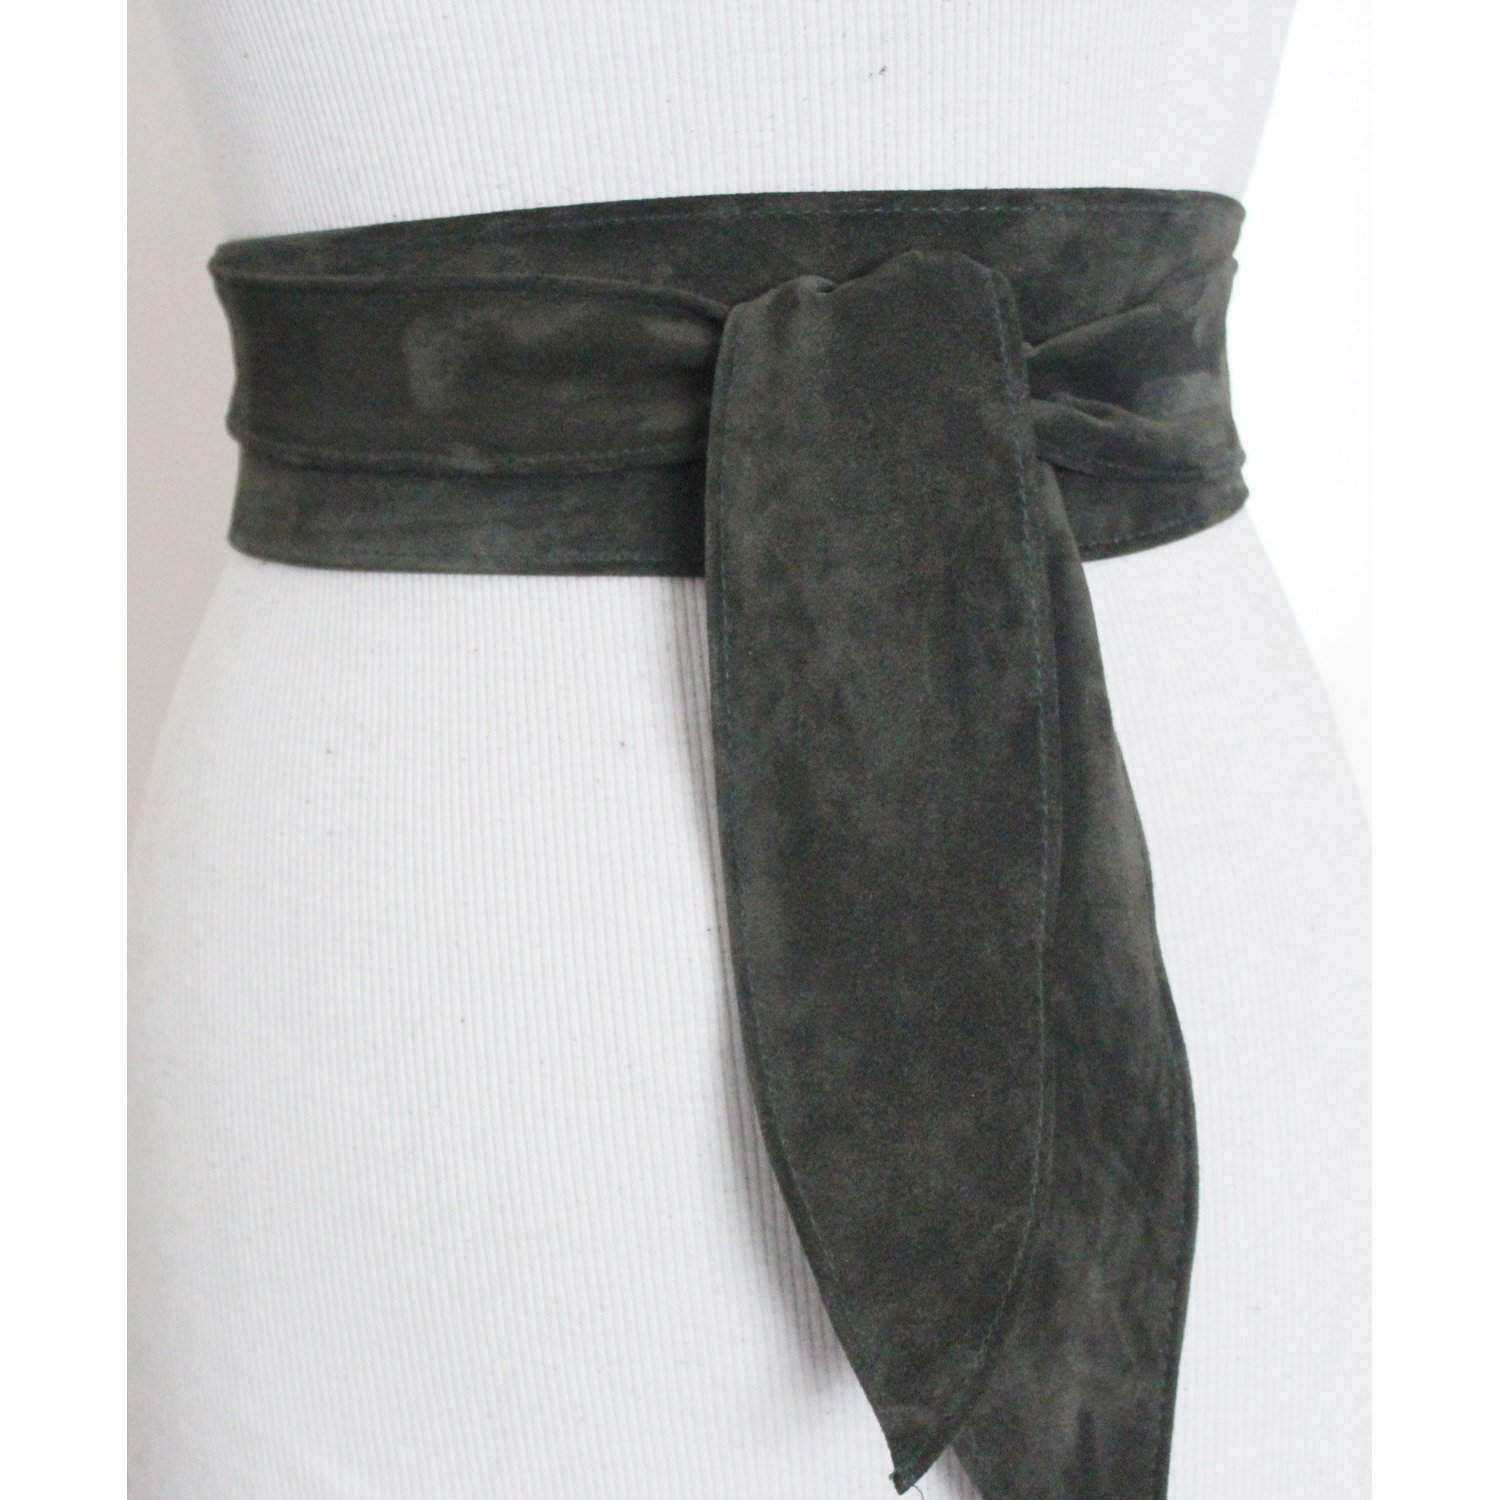 Dark Green Suede Leather Obi Belt tulip tie| Waist Belt | Leather tie belt | Suede Belt| Plus size belts - loveyaayaa